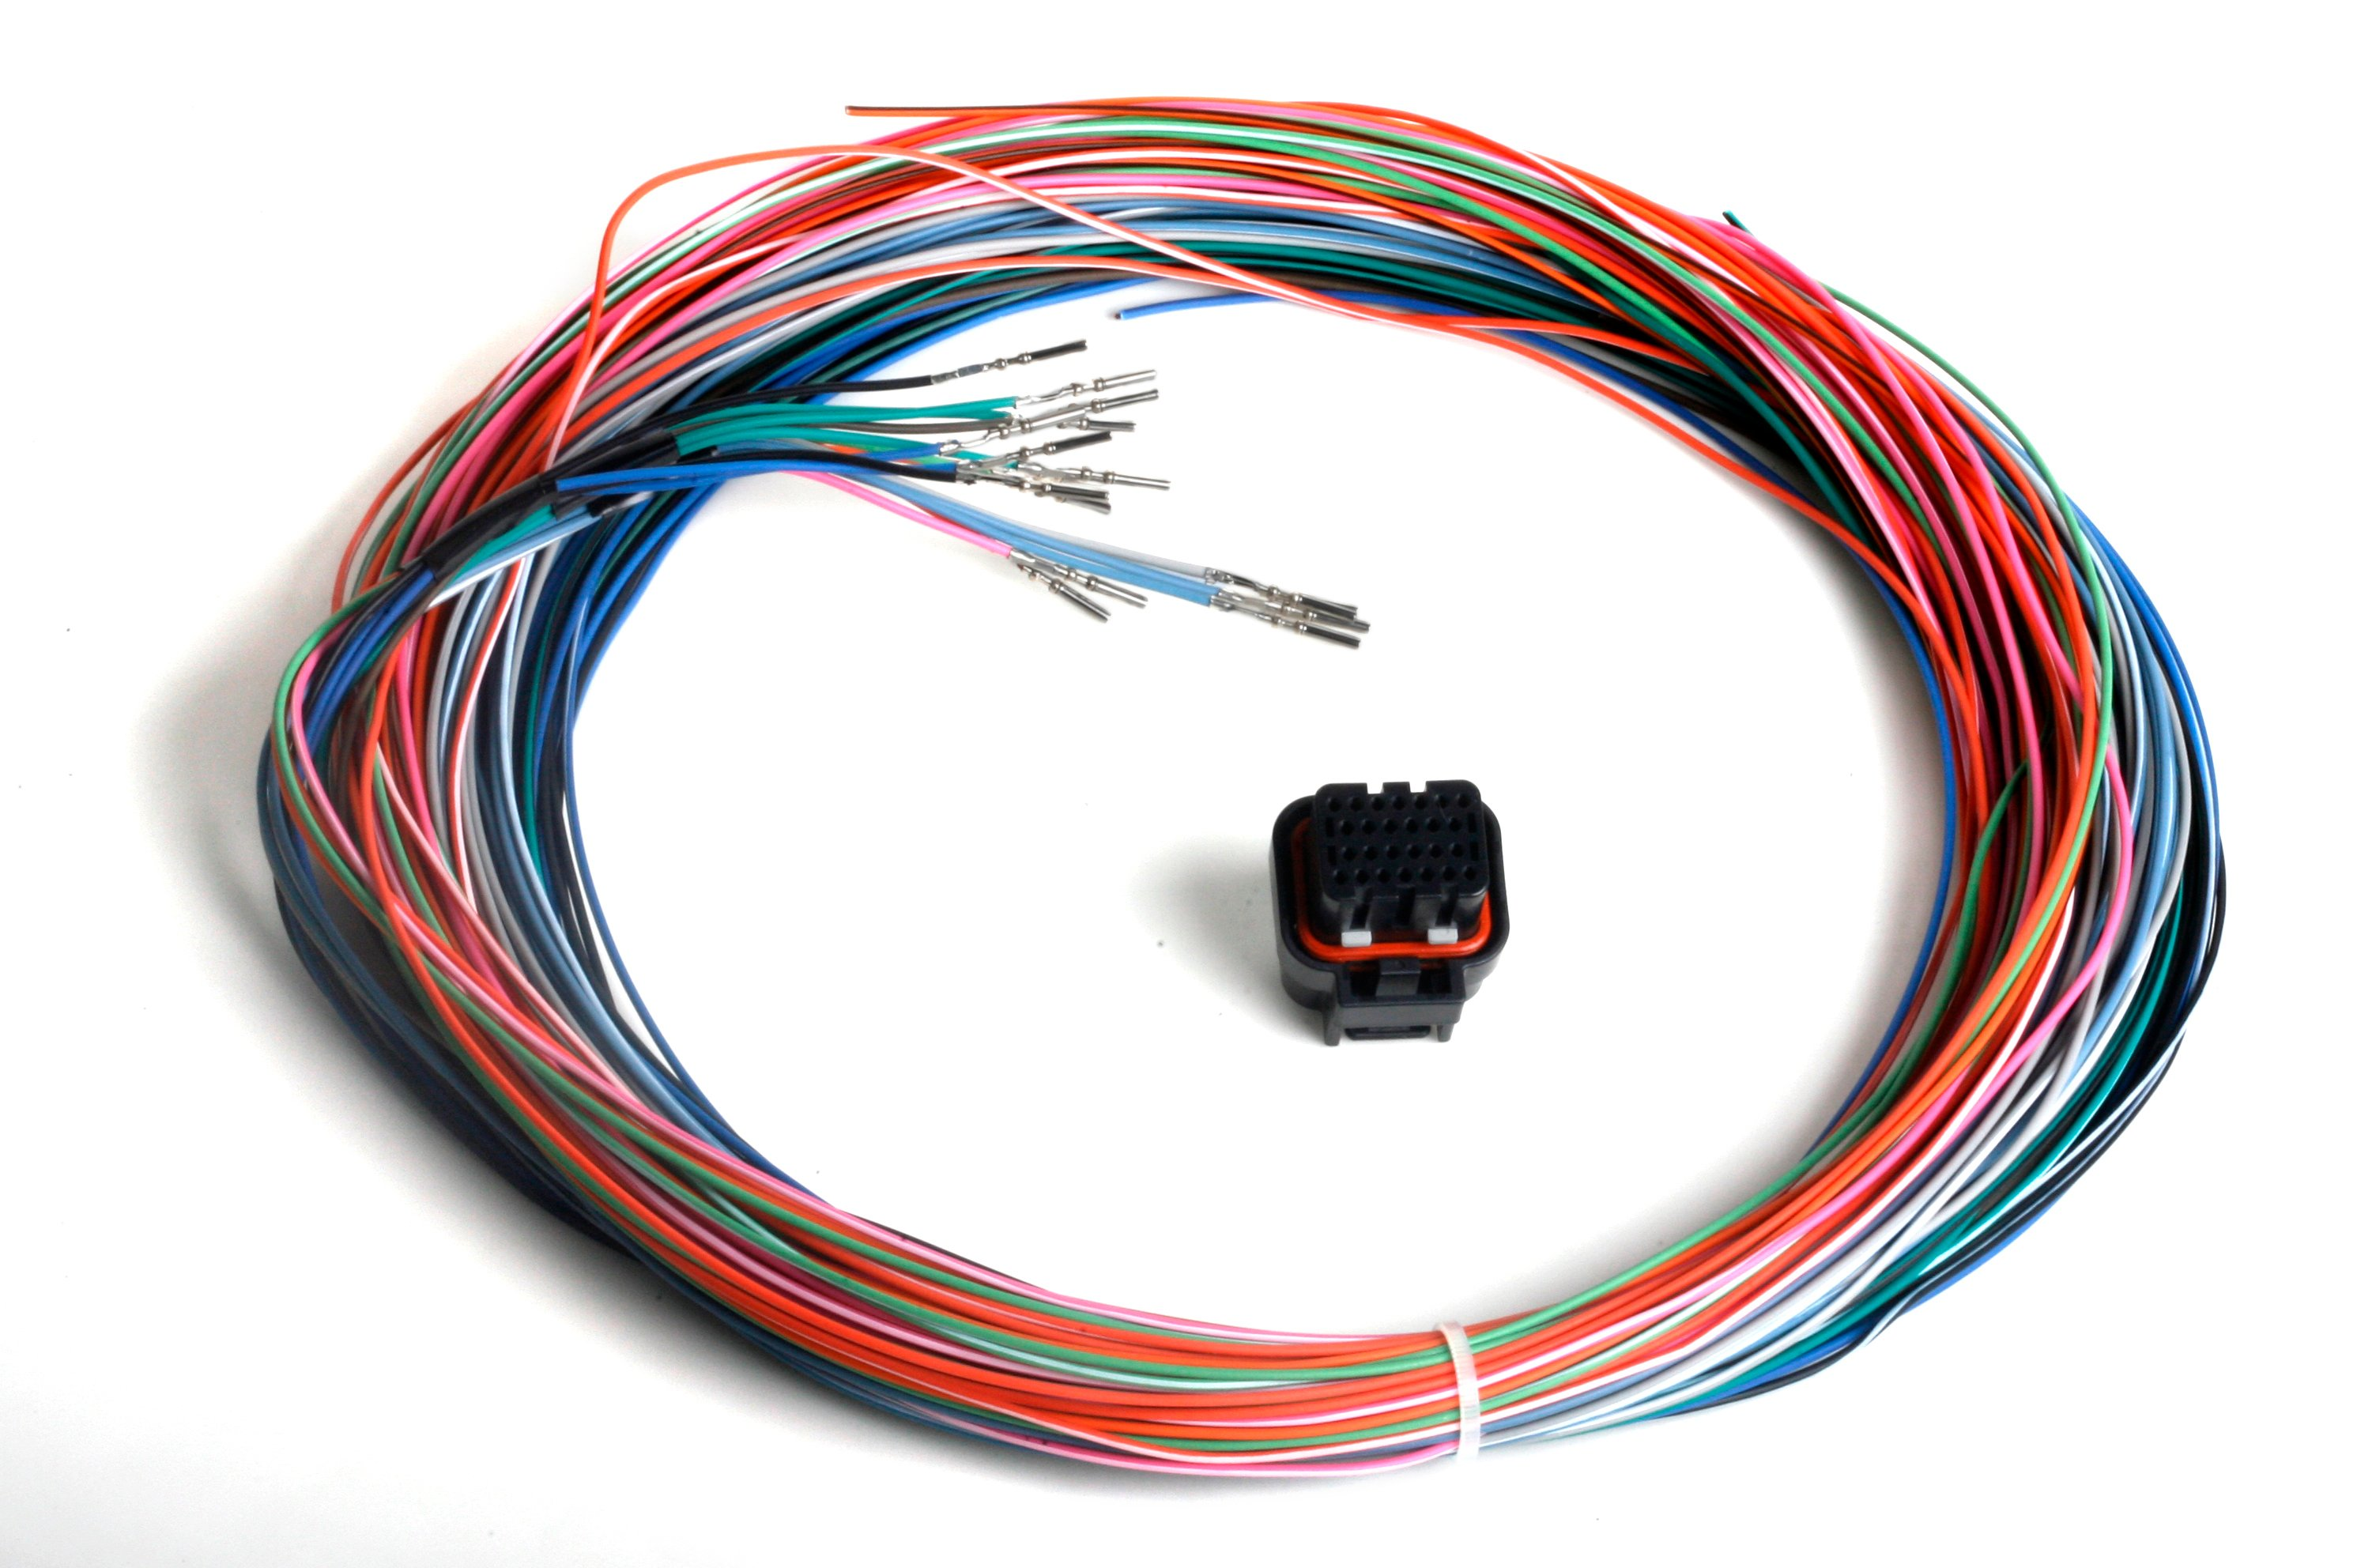 Harnesses - Holley Performance Products on three wire trailer harness, five wire trailer harness, 4 wire plug connector, 7 wire trailer harness, 6 wire trailer harness, wiring harness,